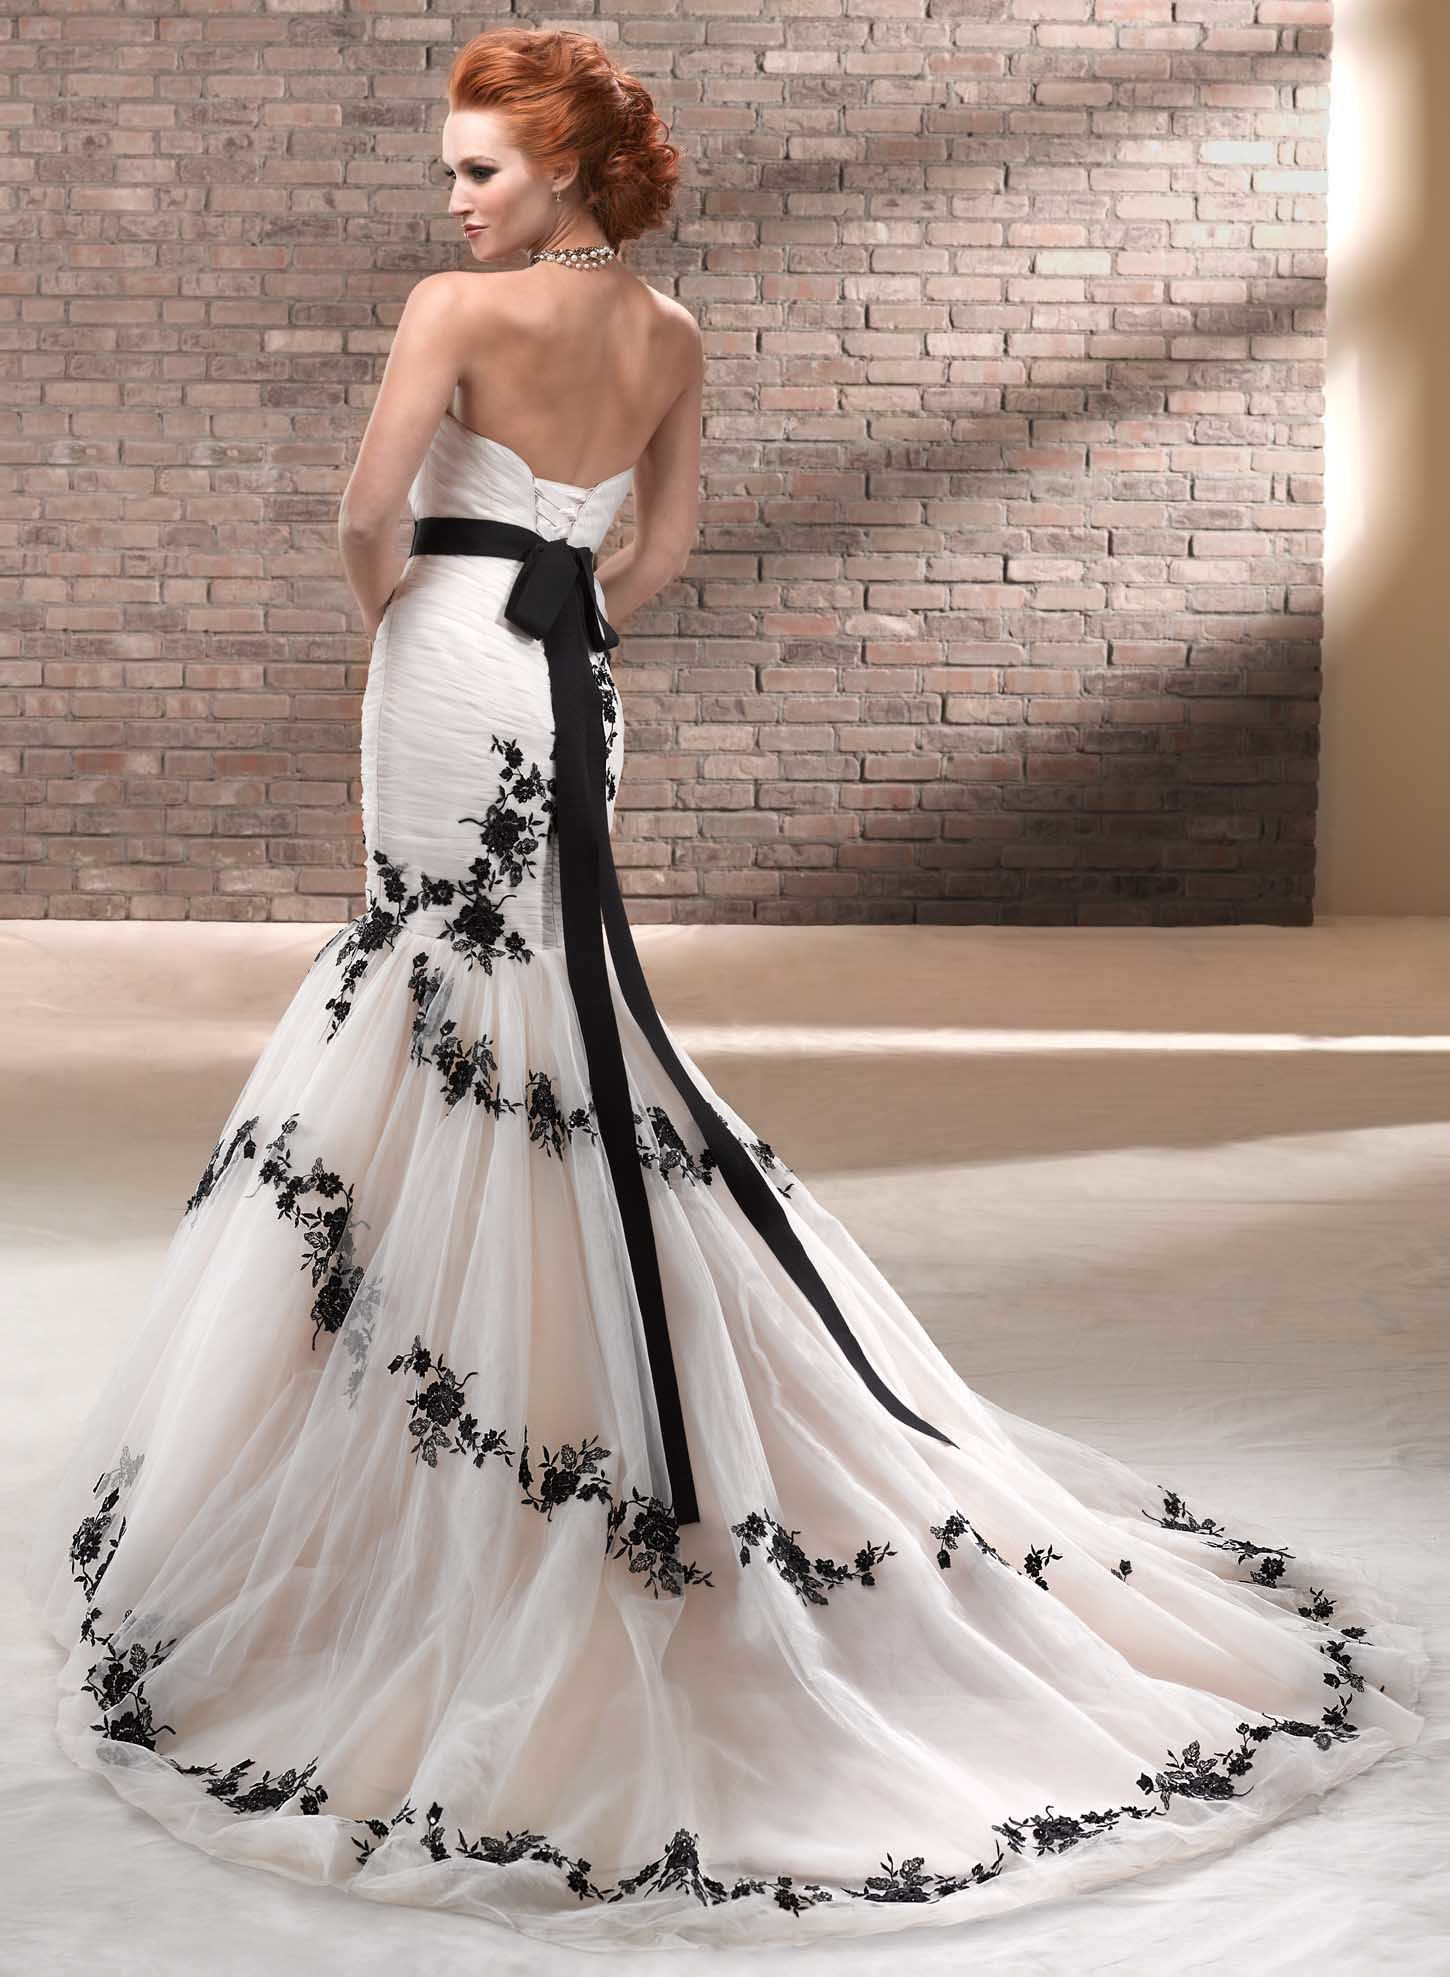 51a6edd31a9 Black and White Mermaid Wedding Dress With Lace. Perfect for Second Wedding